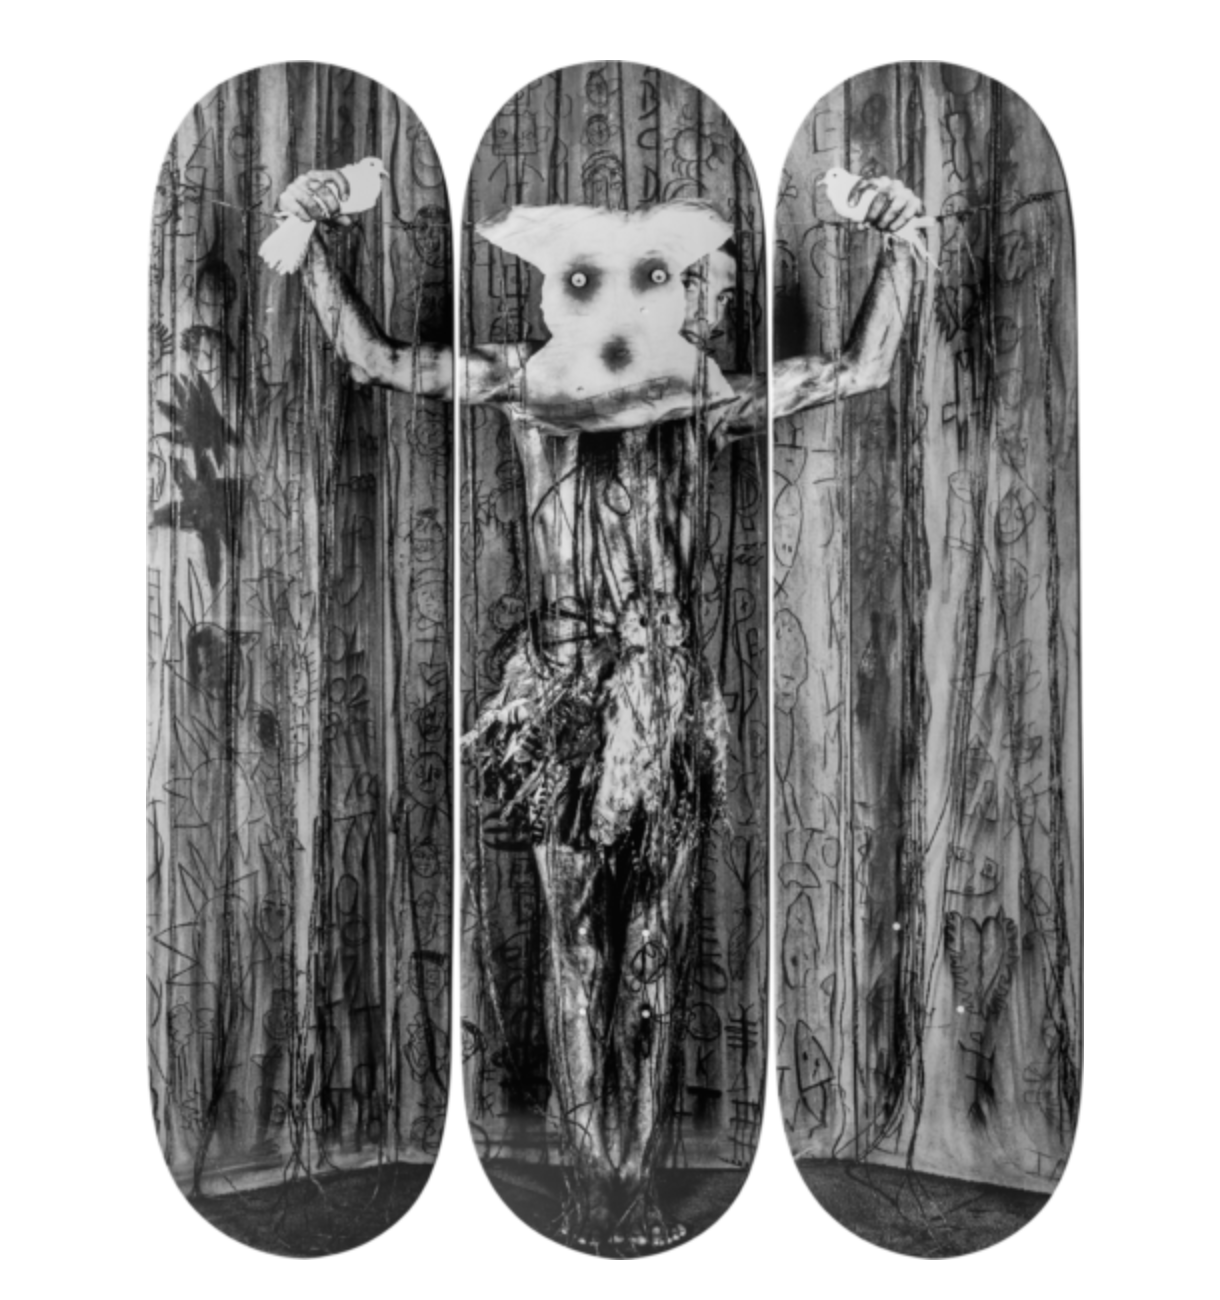 "Alter Ego: Roger Ballen x The Skateroom - A collaboration between Roger Ballen and The Skateroom. Find Ballen's classic ""Alter Ego"" printed across 3 skateboard decks. Signed by the artist himself, this piece is available in a limited edition of 50 with proceeds going to charity.(Photo Credit: The Skateroom)Discover the full story in Issue 9."